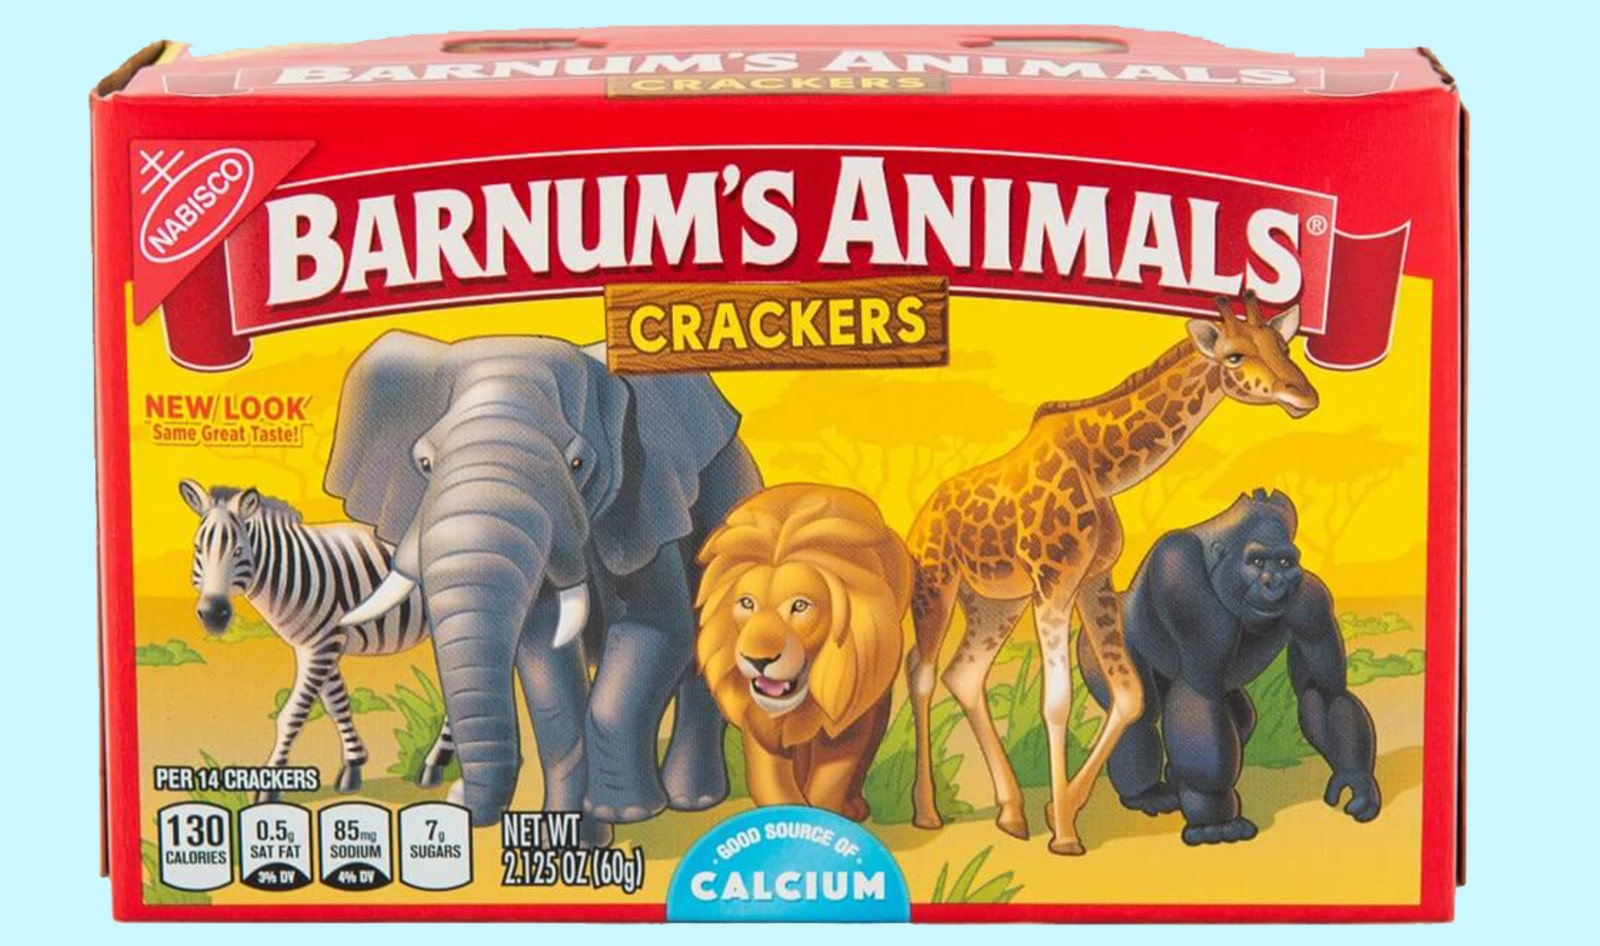 Nabisco Nixes Cages From Animal Crackers